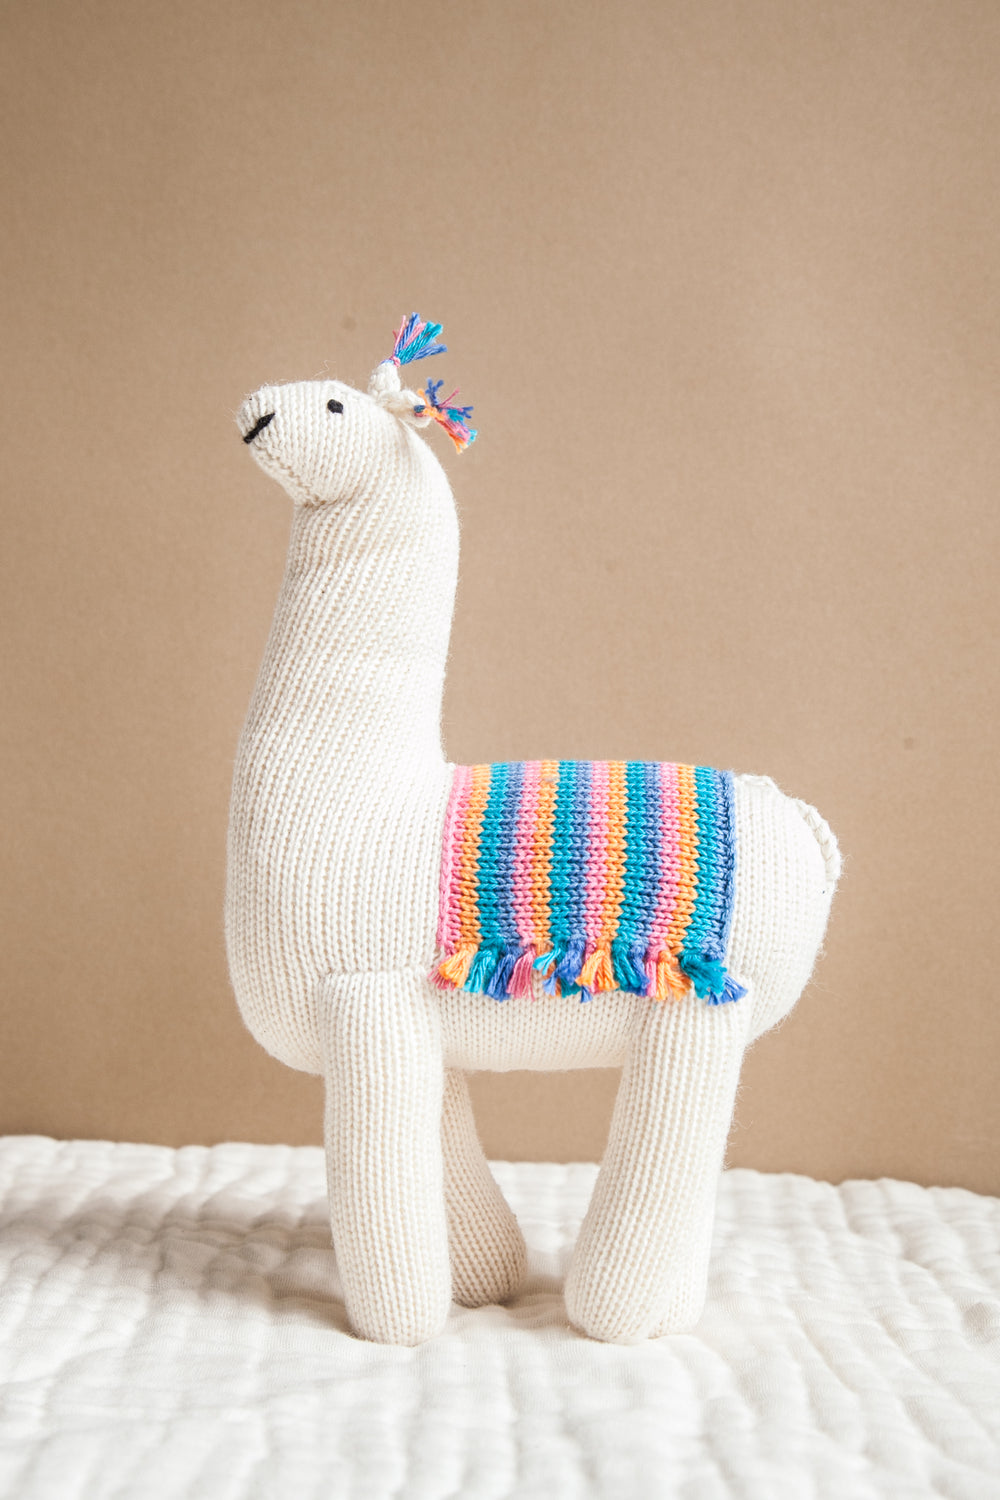 Rainbow Alpaca - Stuffed Toy